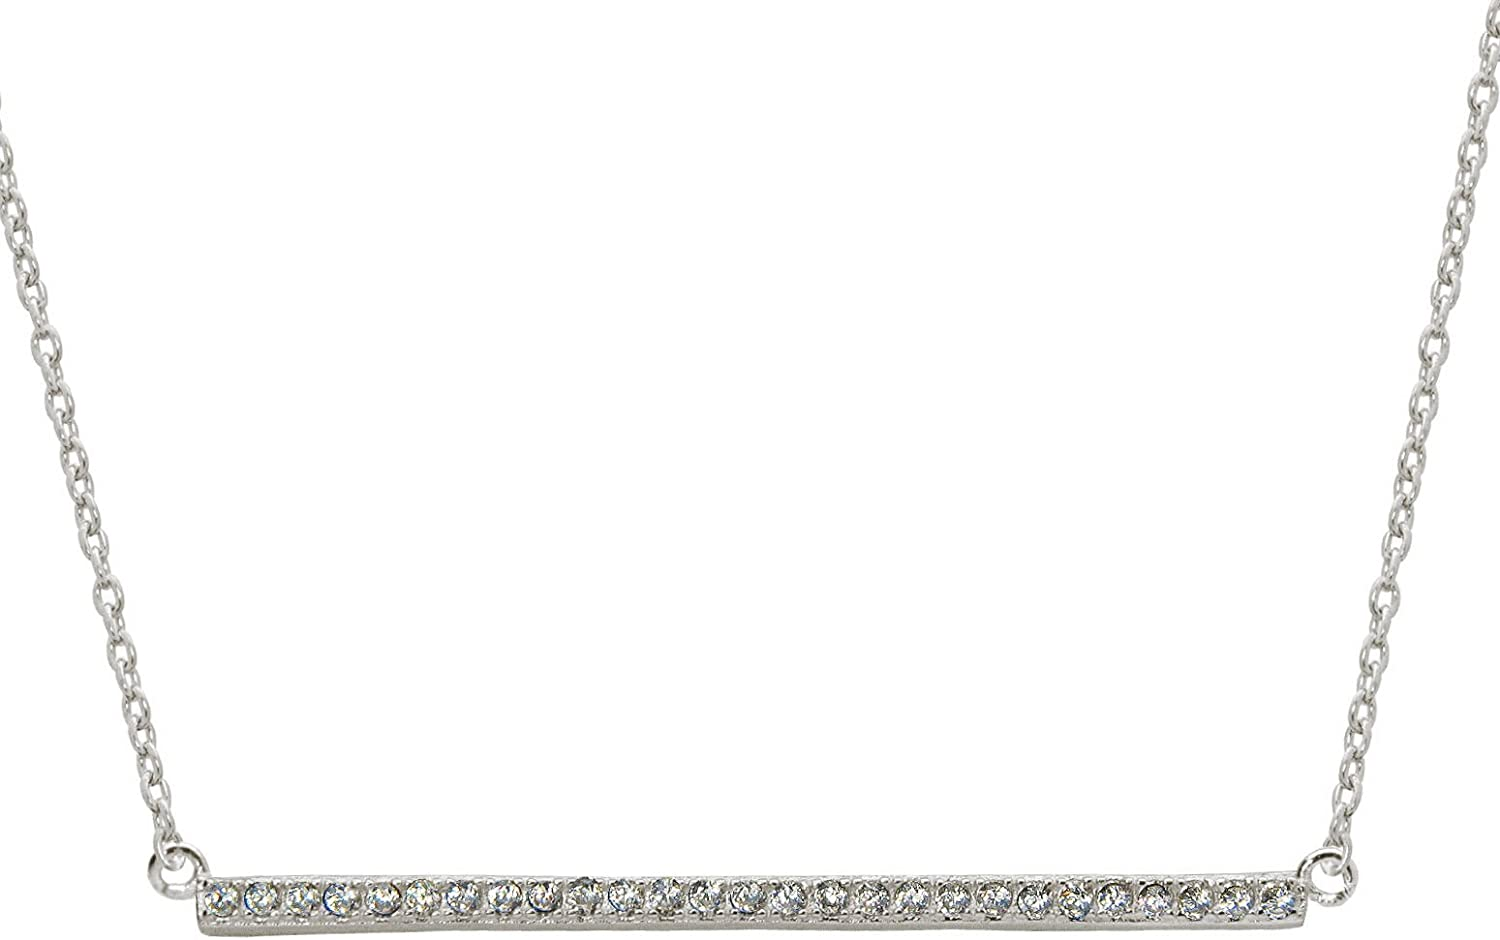 FRONAY Sterling Silver Two Tone Cubic Zirconia Sideways Bar Necklace Boutique Jewelry